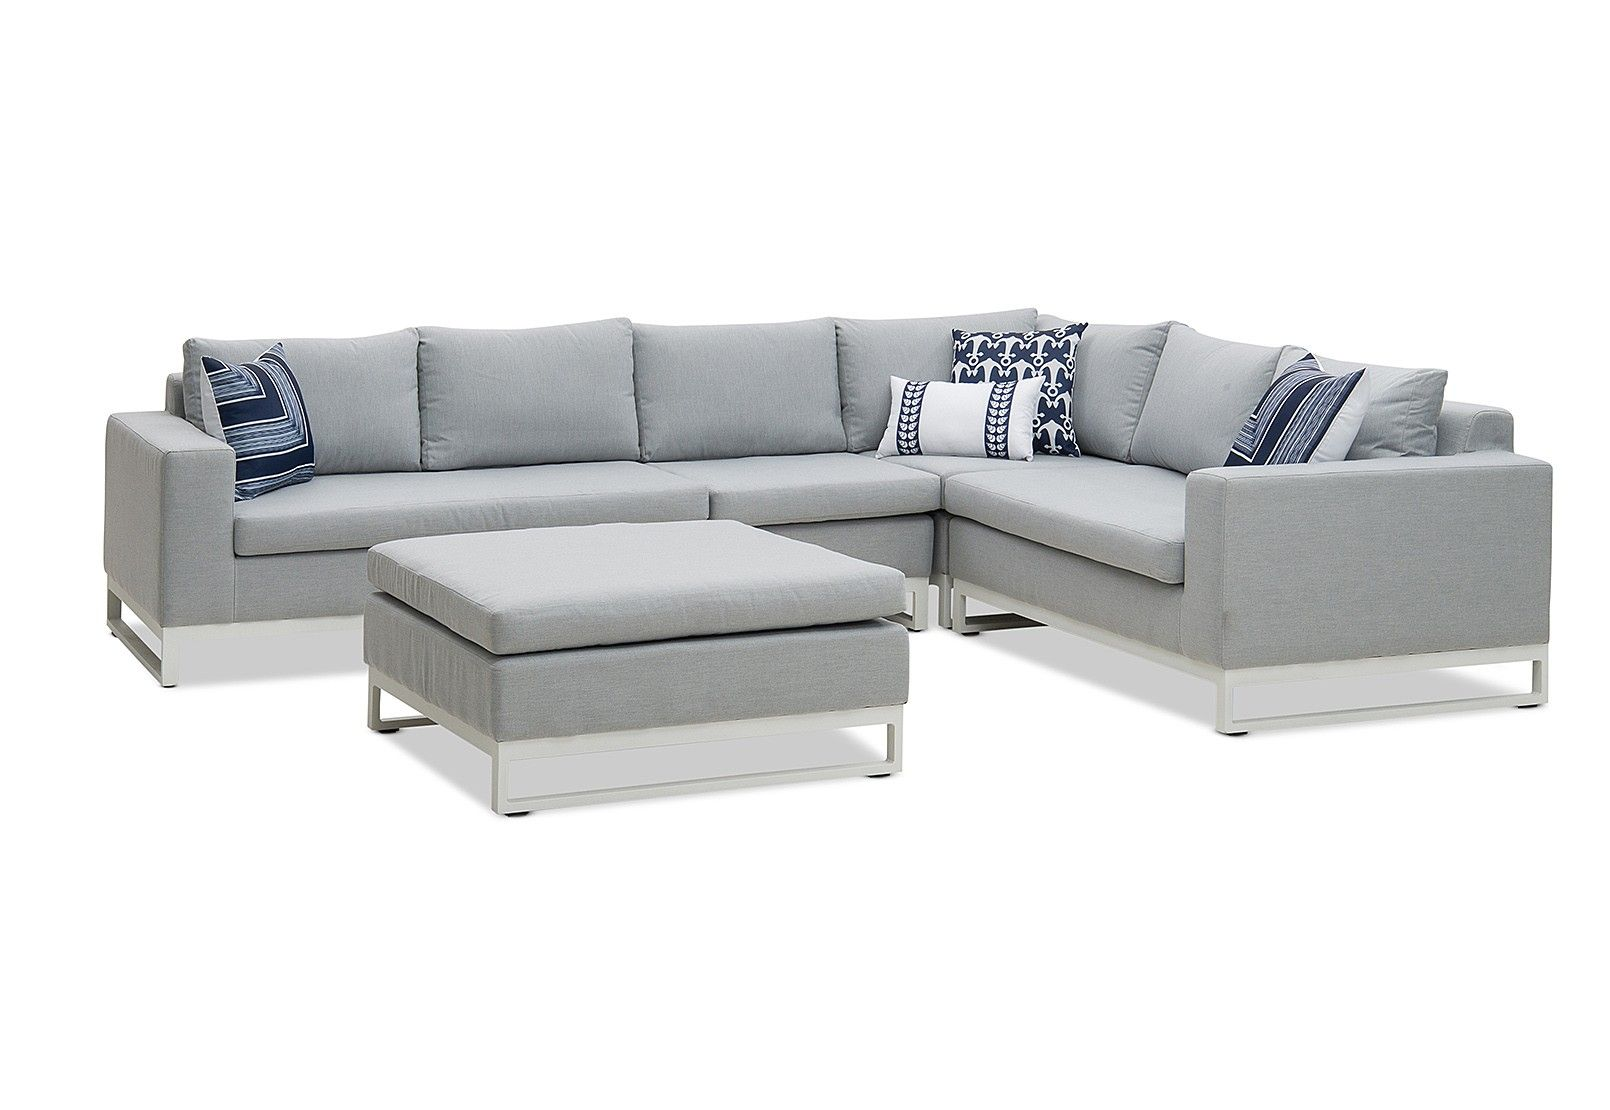 2 500 Larissa Modular Lounge Setting Amart Furniture Modular Lounges Furniture Offers Modular